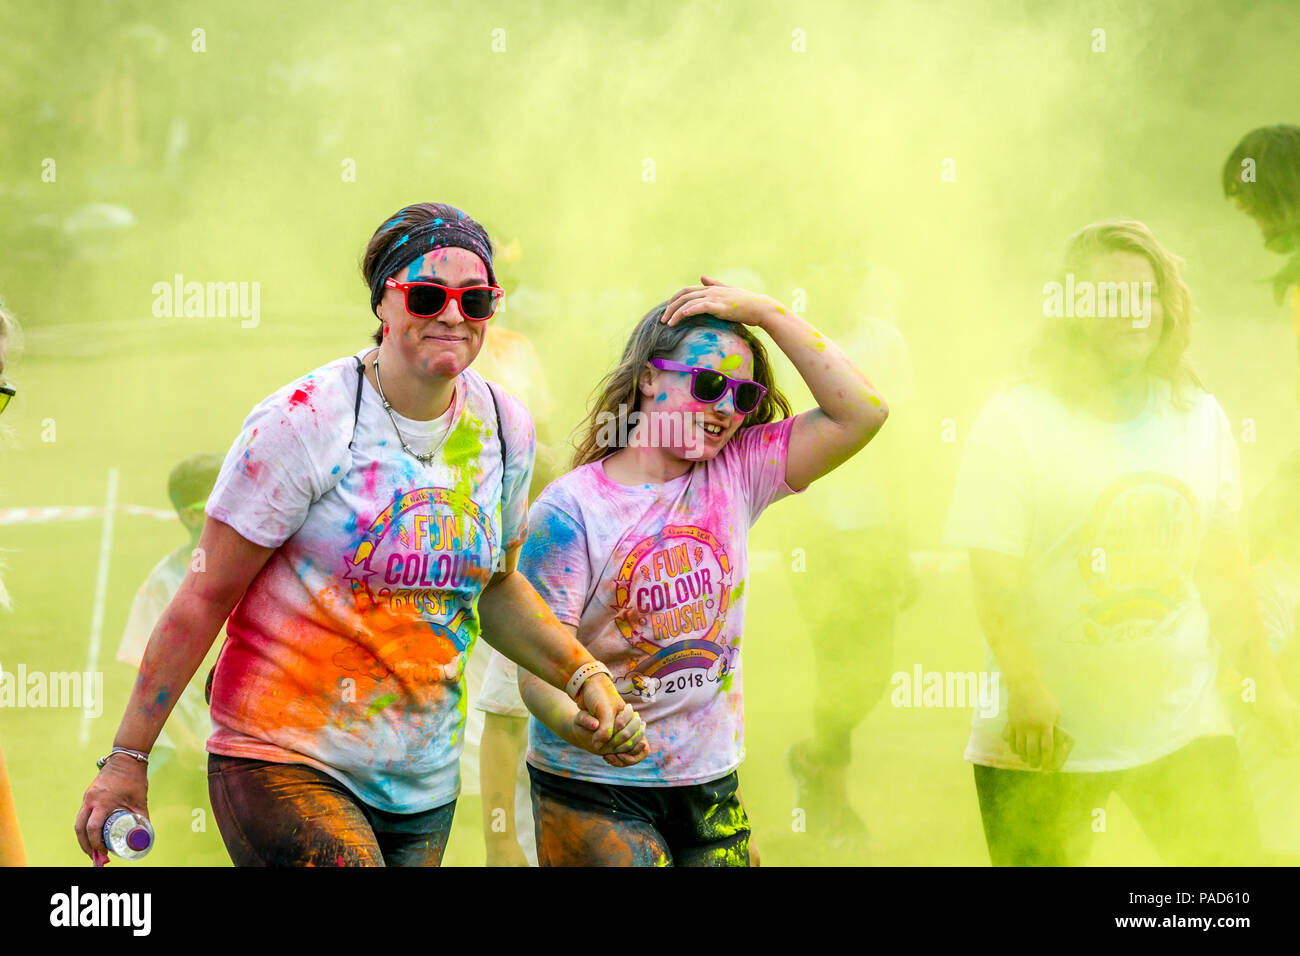 Abington Park, Northampton, U.K. 22nd July 2018. Fun Colour Rush, family event with over 3000 people entered this year raising money for 3 different charities, the organisers had to swap the venue twice because of Travellers on Abington Park up until yesterday lunchtime, after they were removed they went onto the new venue site, so it had to be swapped back again at the last minute. Credit:  Keith J Smith./Alamy Live - Stock Image